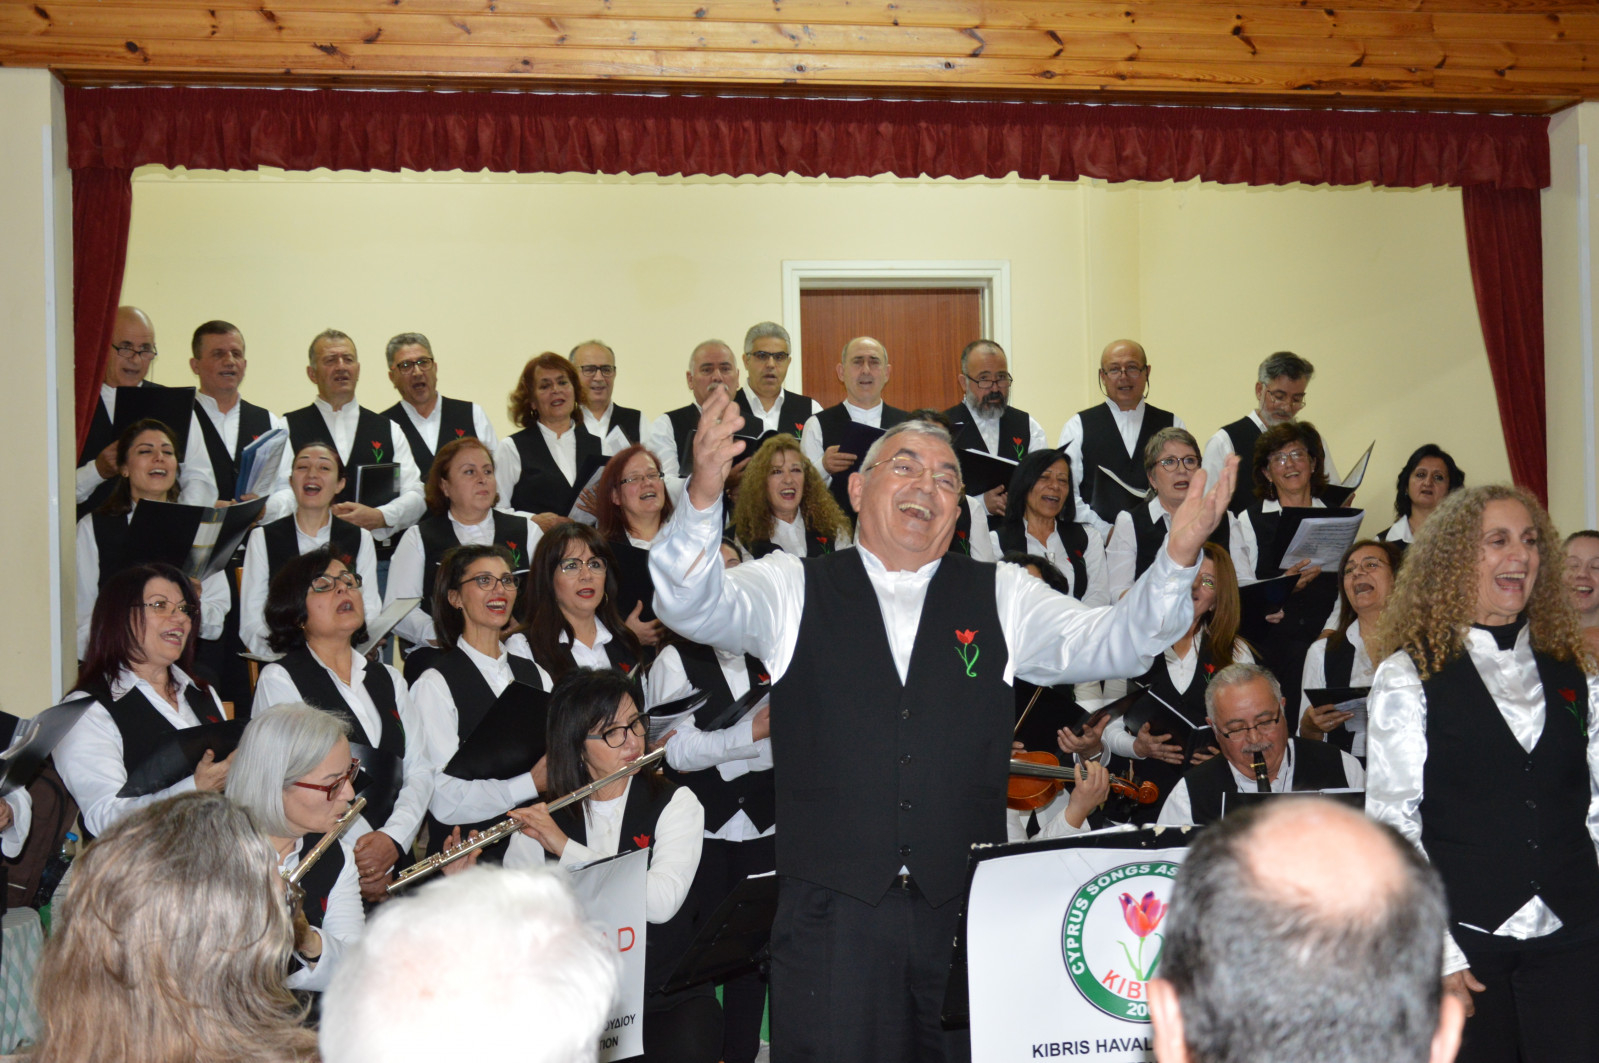 Cyprus Songs Association